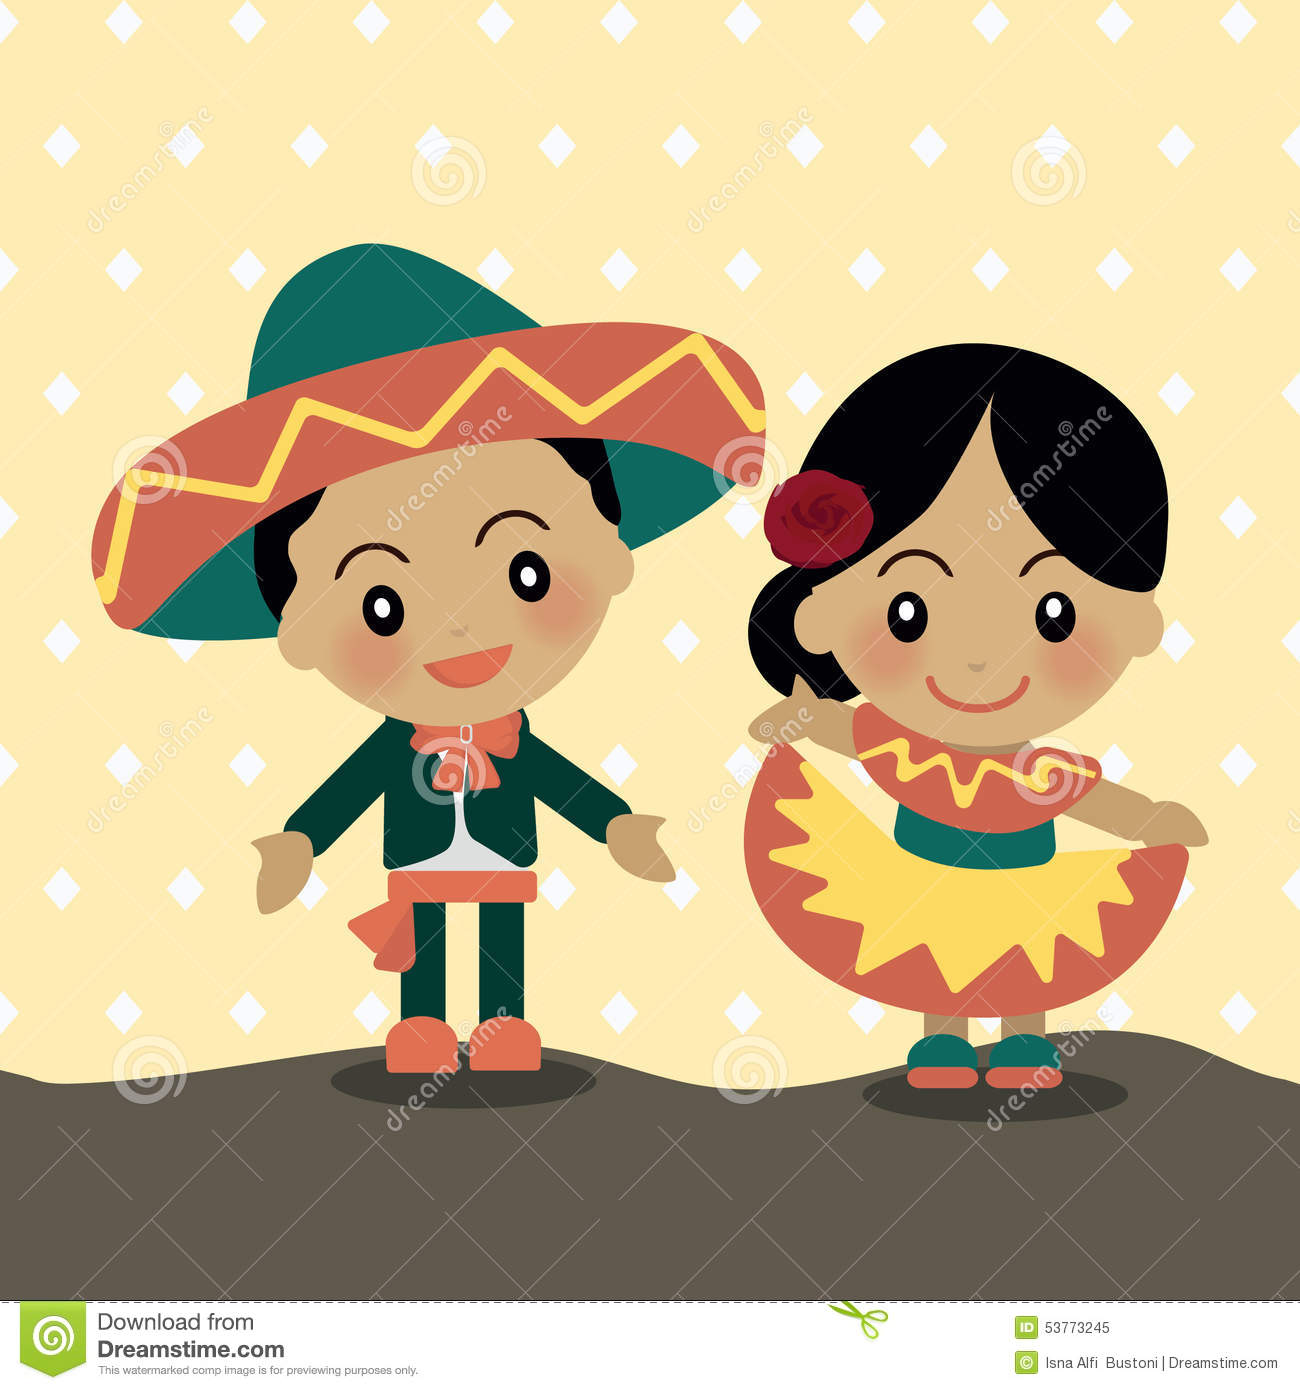 Mexican traditional dress clipart clip royalty free download Boy mexican clothing clipart - ClipartFest clip royalty free download